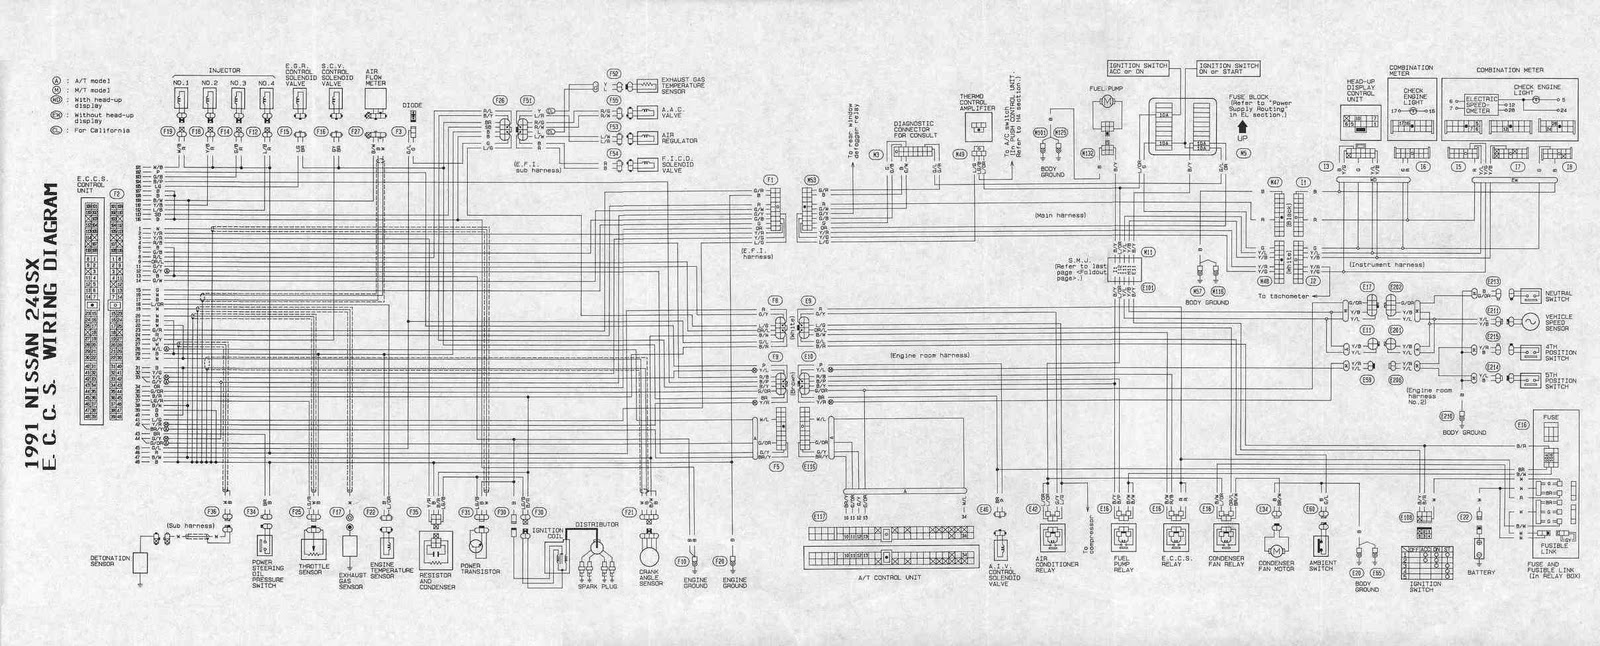 nissan wiring schematics    nissan    240sx 1991 eccs    wiring    diagram all about    wiring        nissan    240sx 1991 eccs    wiring    diagram all about    wiring